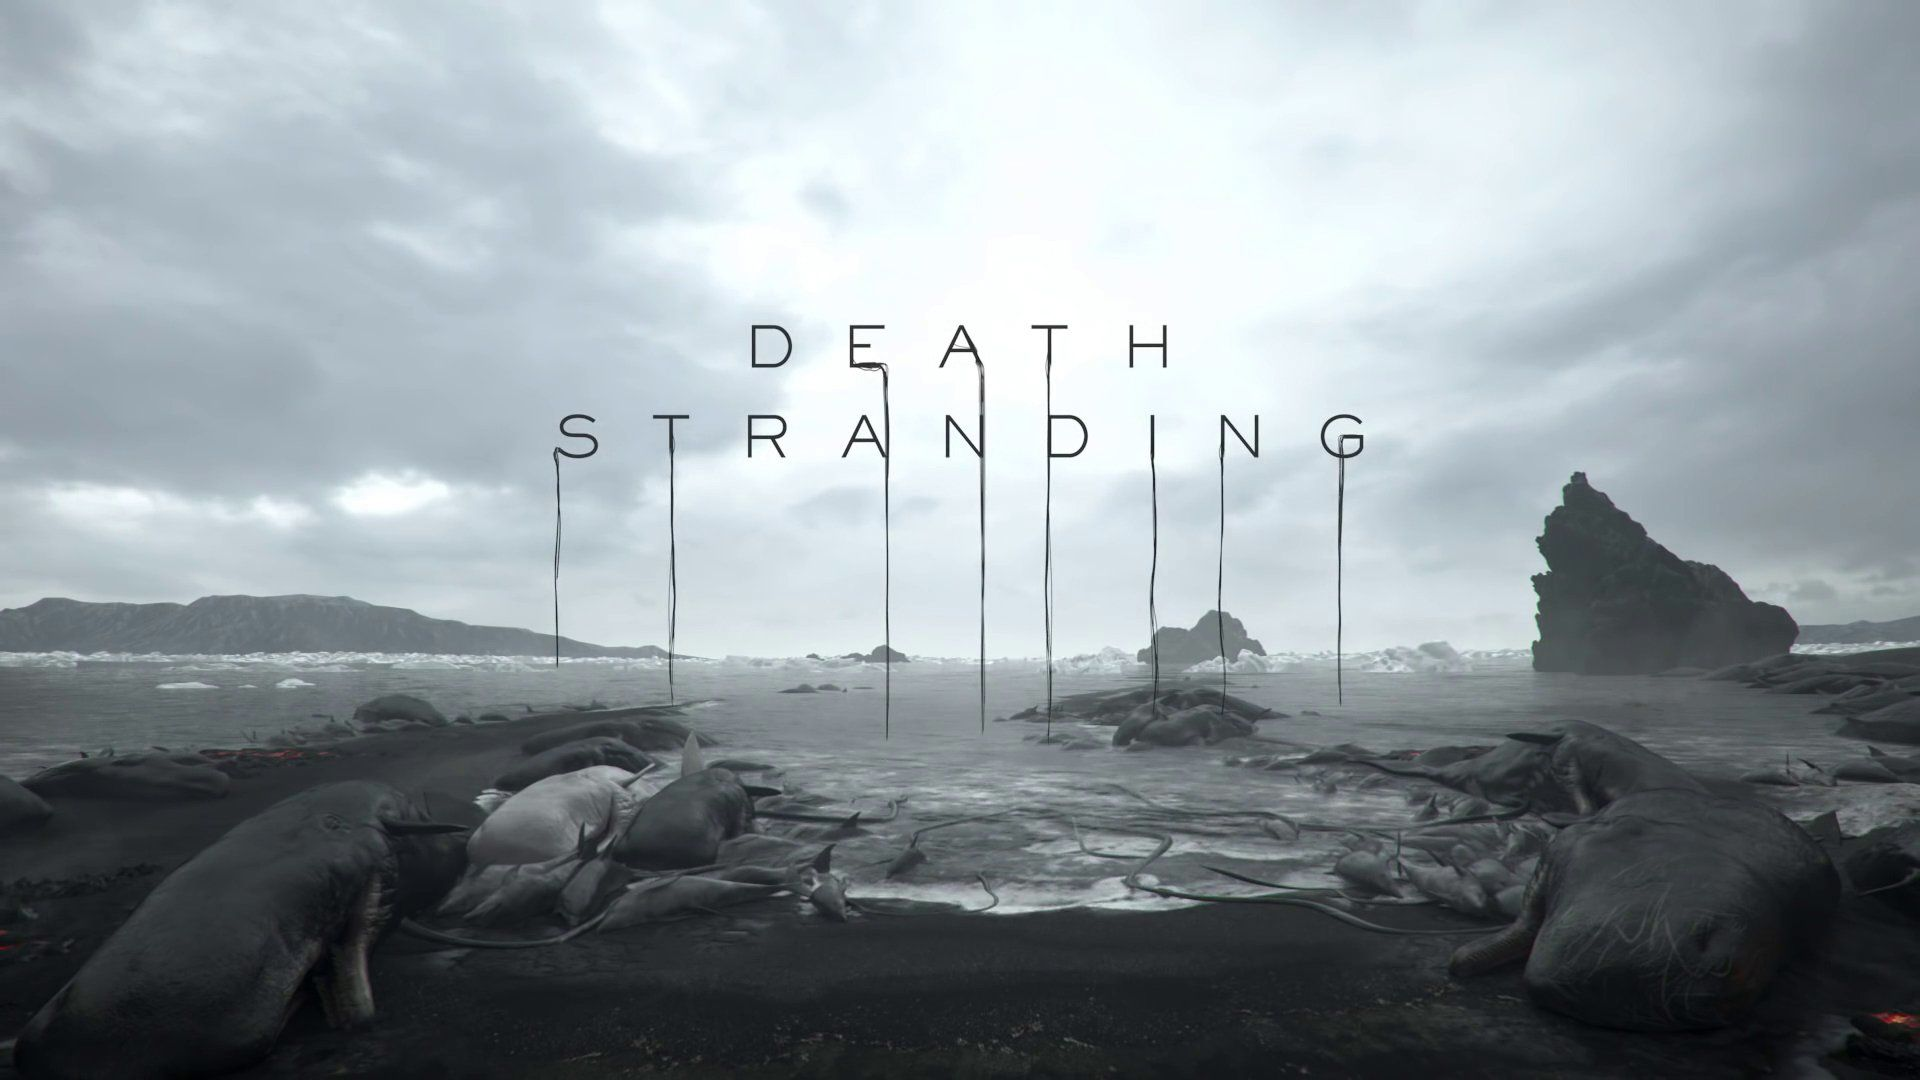 Death Stranding 4k Wallpapers Top Free Death Stranding 4k